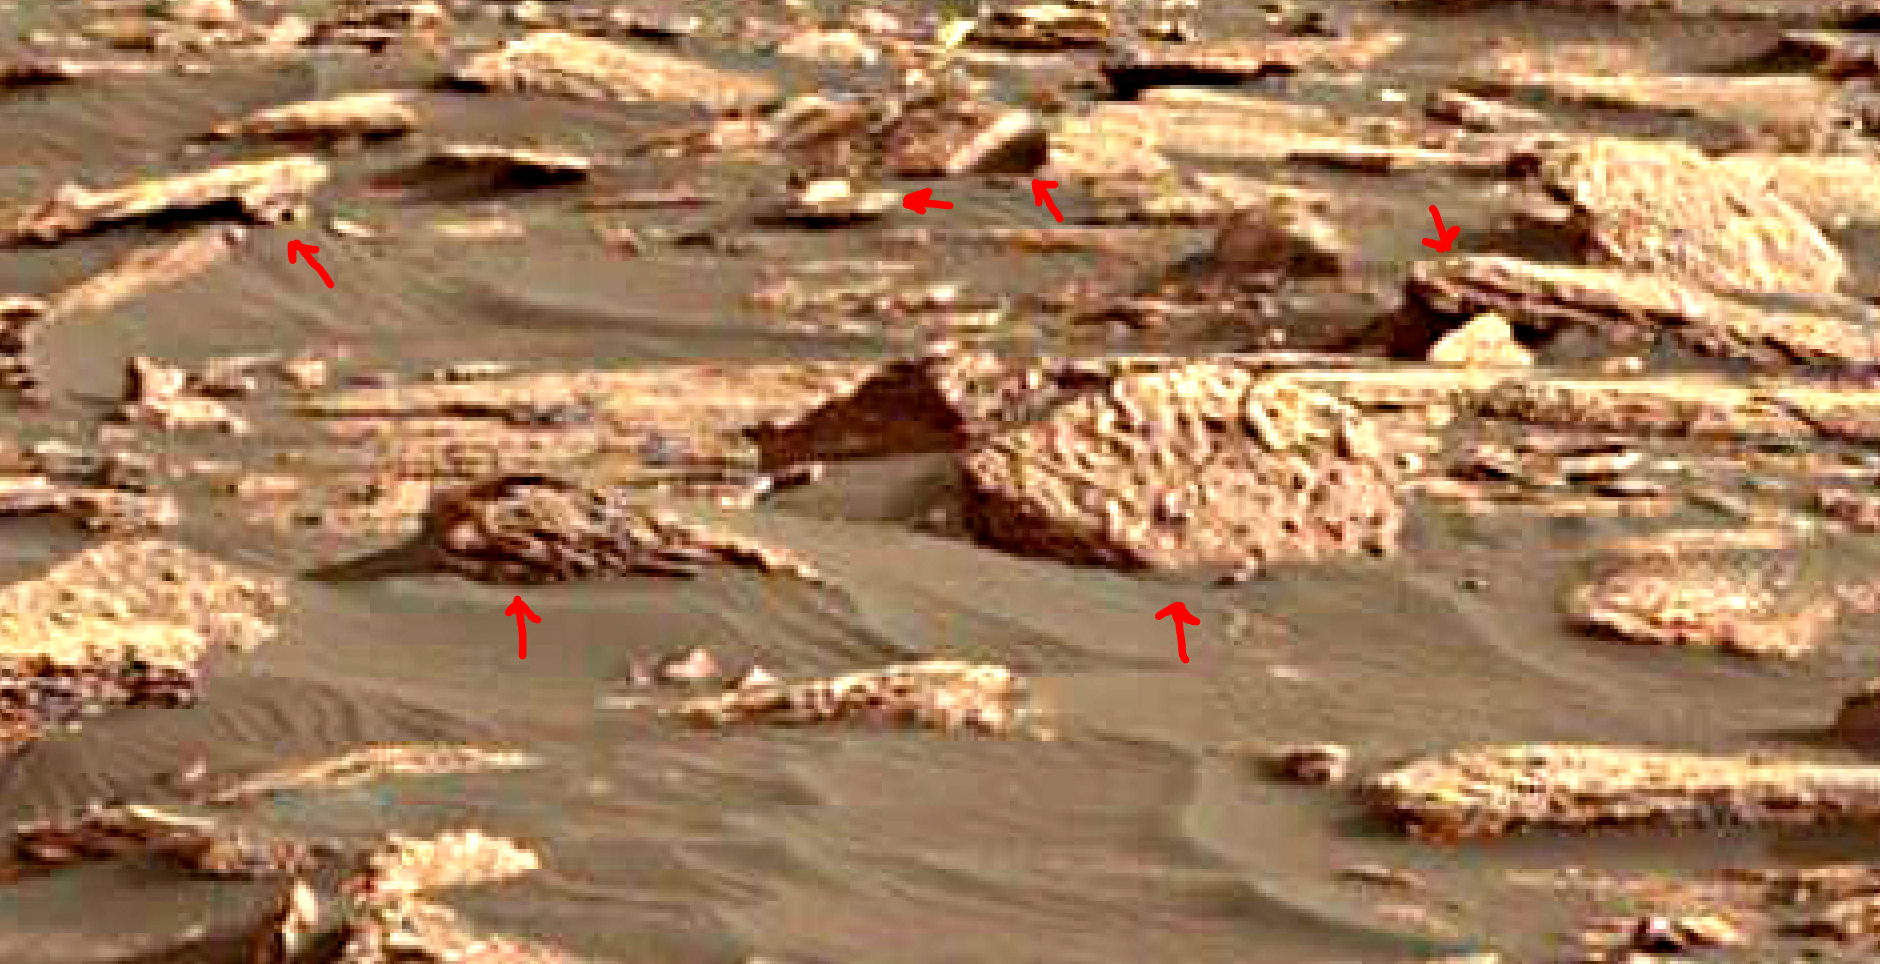 mars-sol-1512-anomaly-artifacts-4-was-life-on-mars